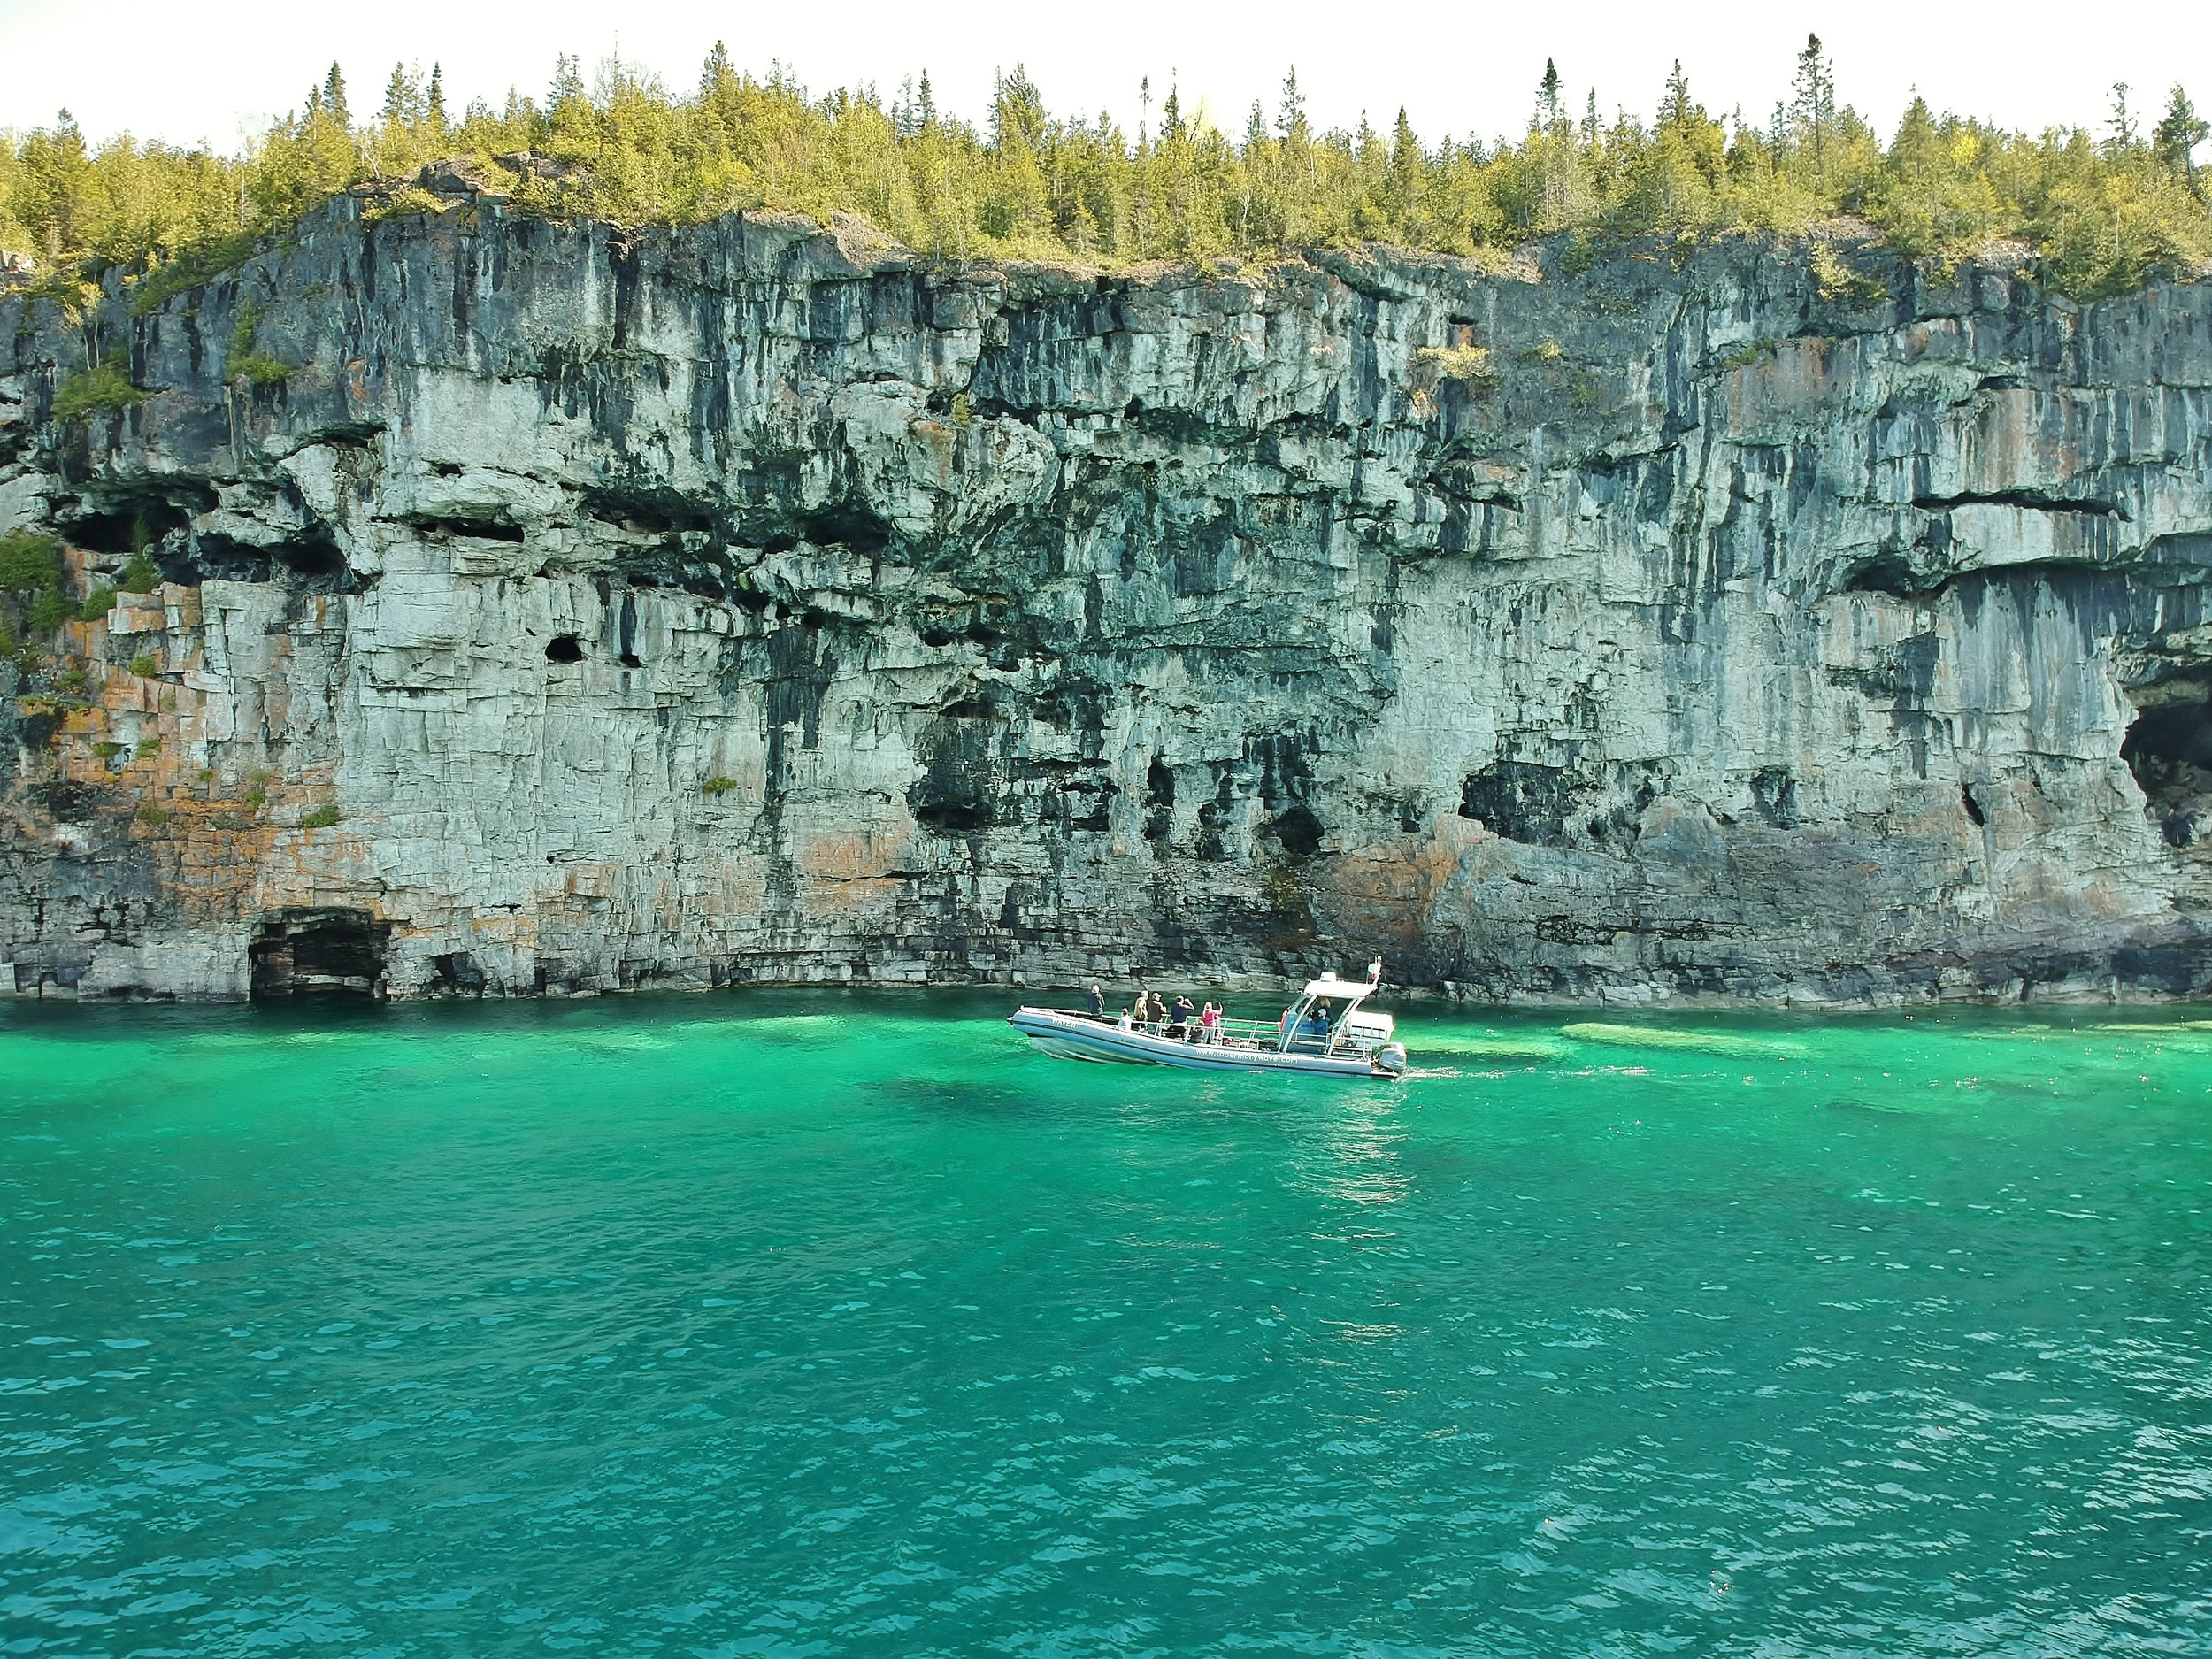 Deluxe Wave Tour - Our classic cliffs and caves tour but longer. Do you want to experience more of the National Park than anyone else? See several destinations like Flowerpot Island, The Grotto and spectacular Cave Point on this exclusive 3 hour guided tour. Private tour option. Cancellation & fine print.Adults $57 - Seniors $54 - Child $50